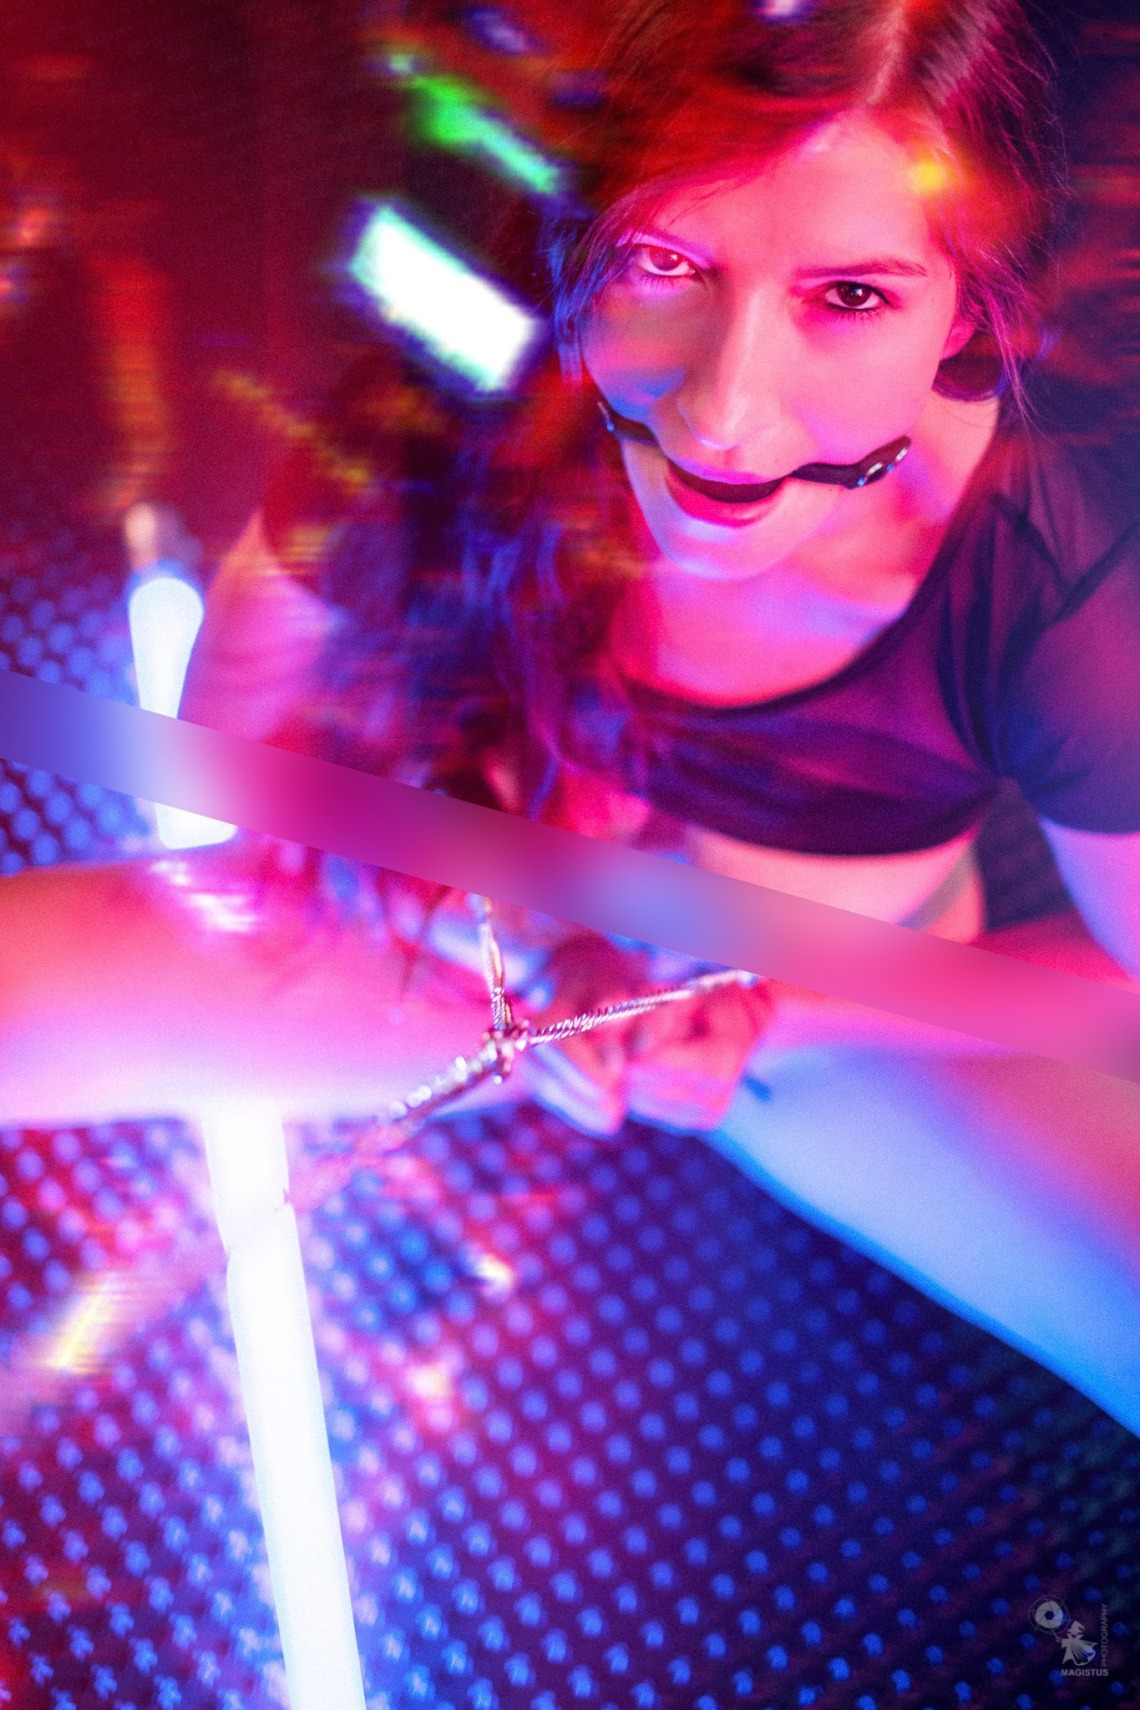 Super hot girl with nipple clamps and gagged in neon light (Censored)